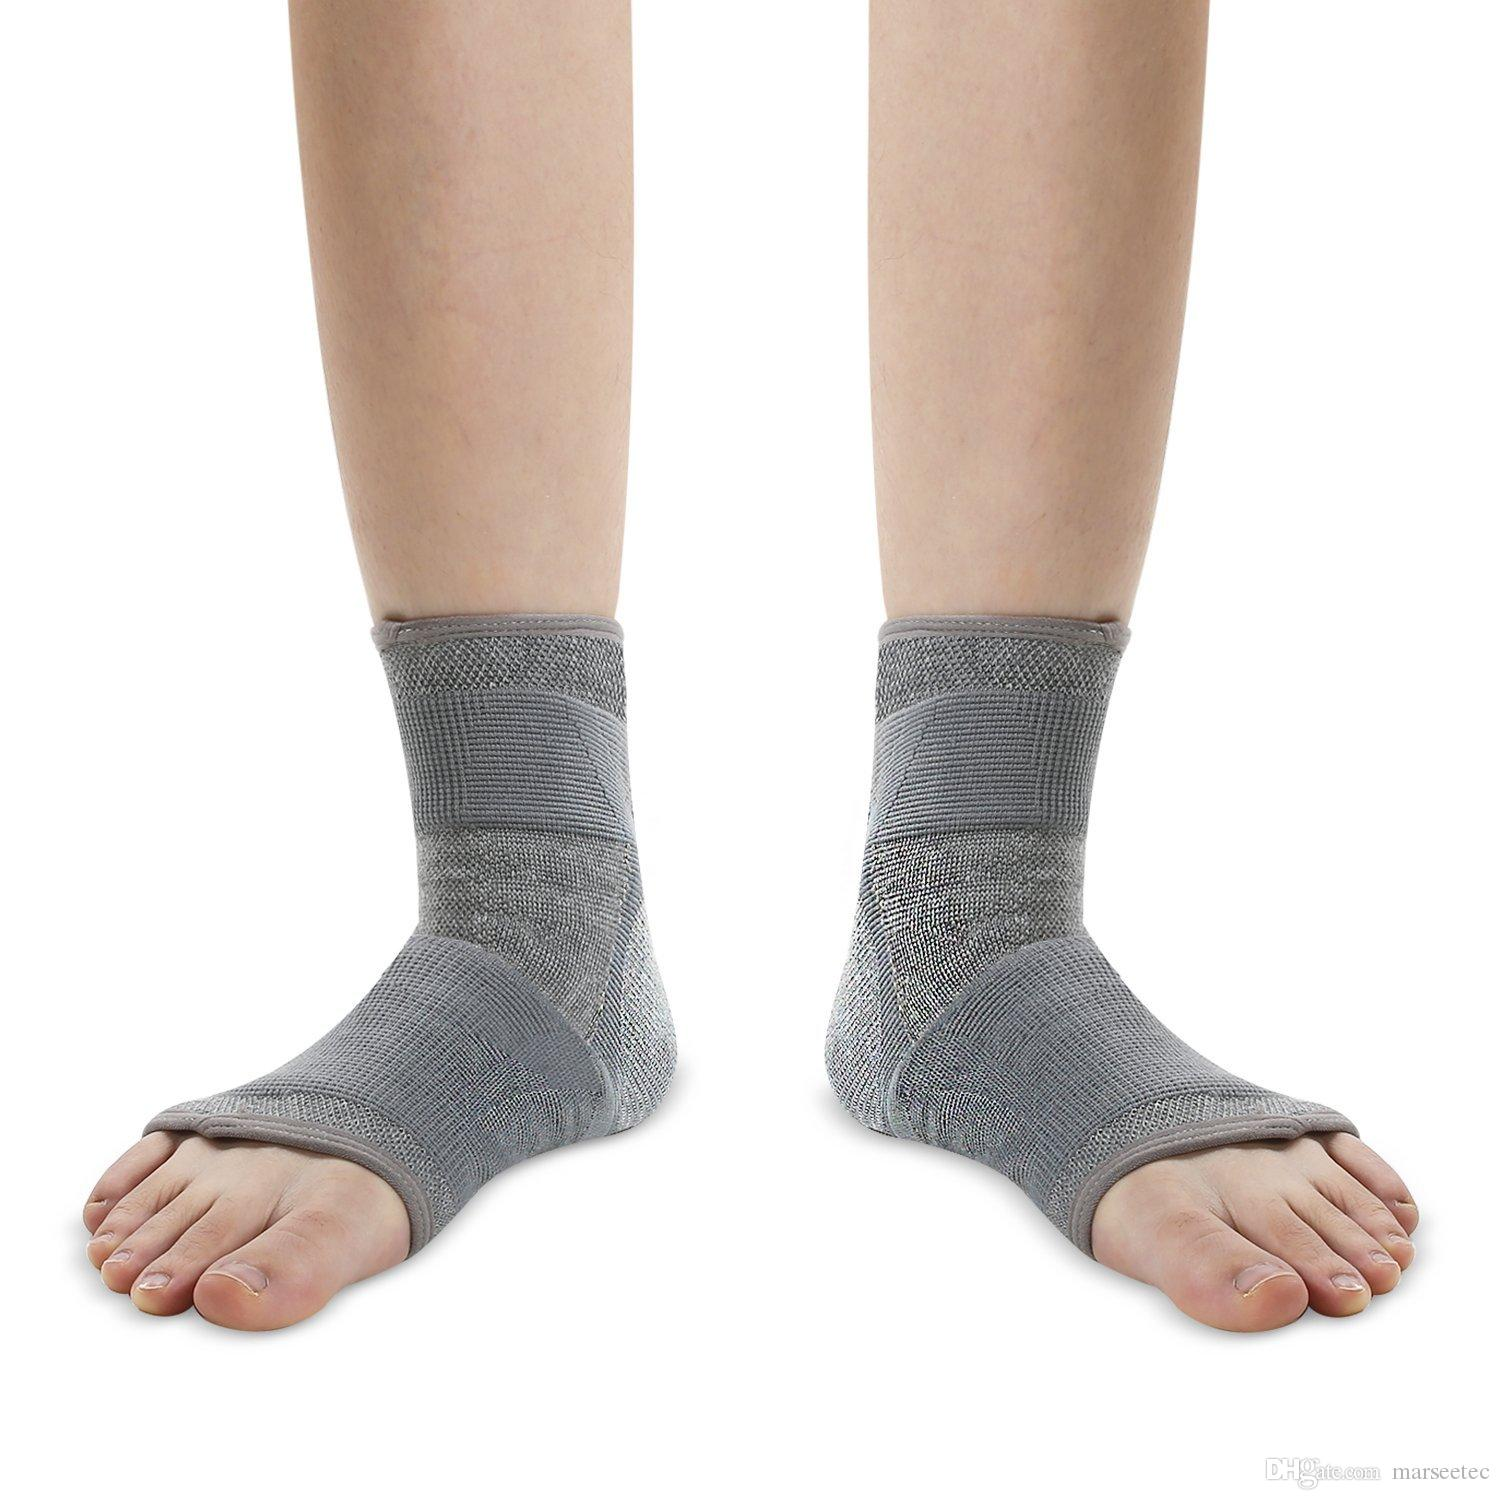 if reviews plantar fasciitis fascitis is stock the sport good gear feet ahead in go treat check another out of physics top tmf socks planter best and compare my choice